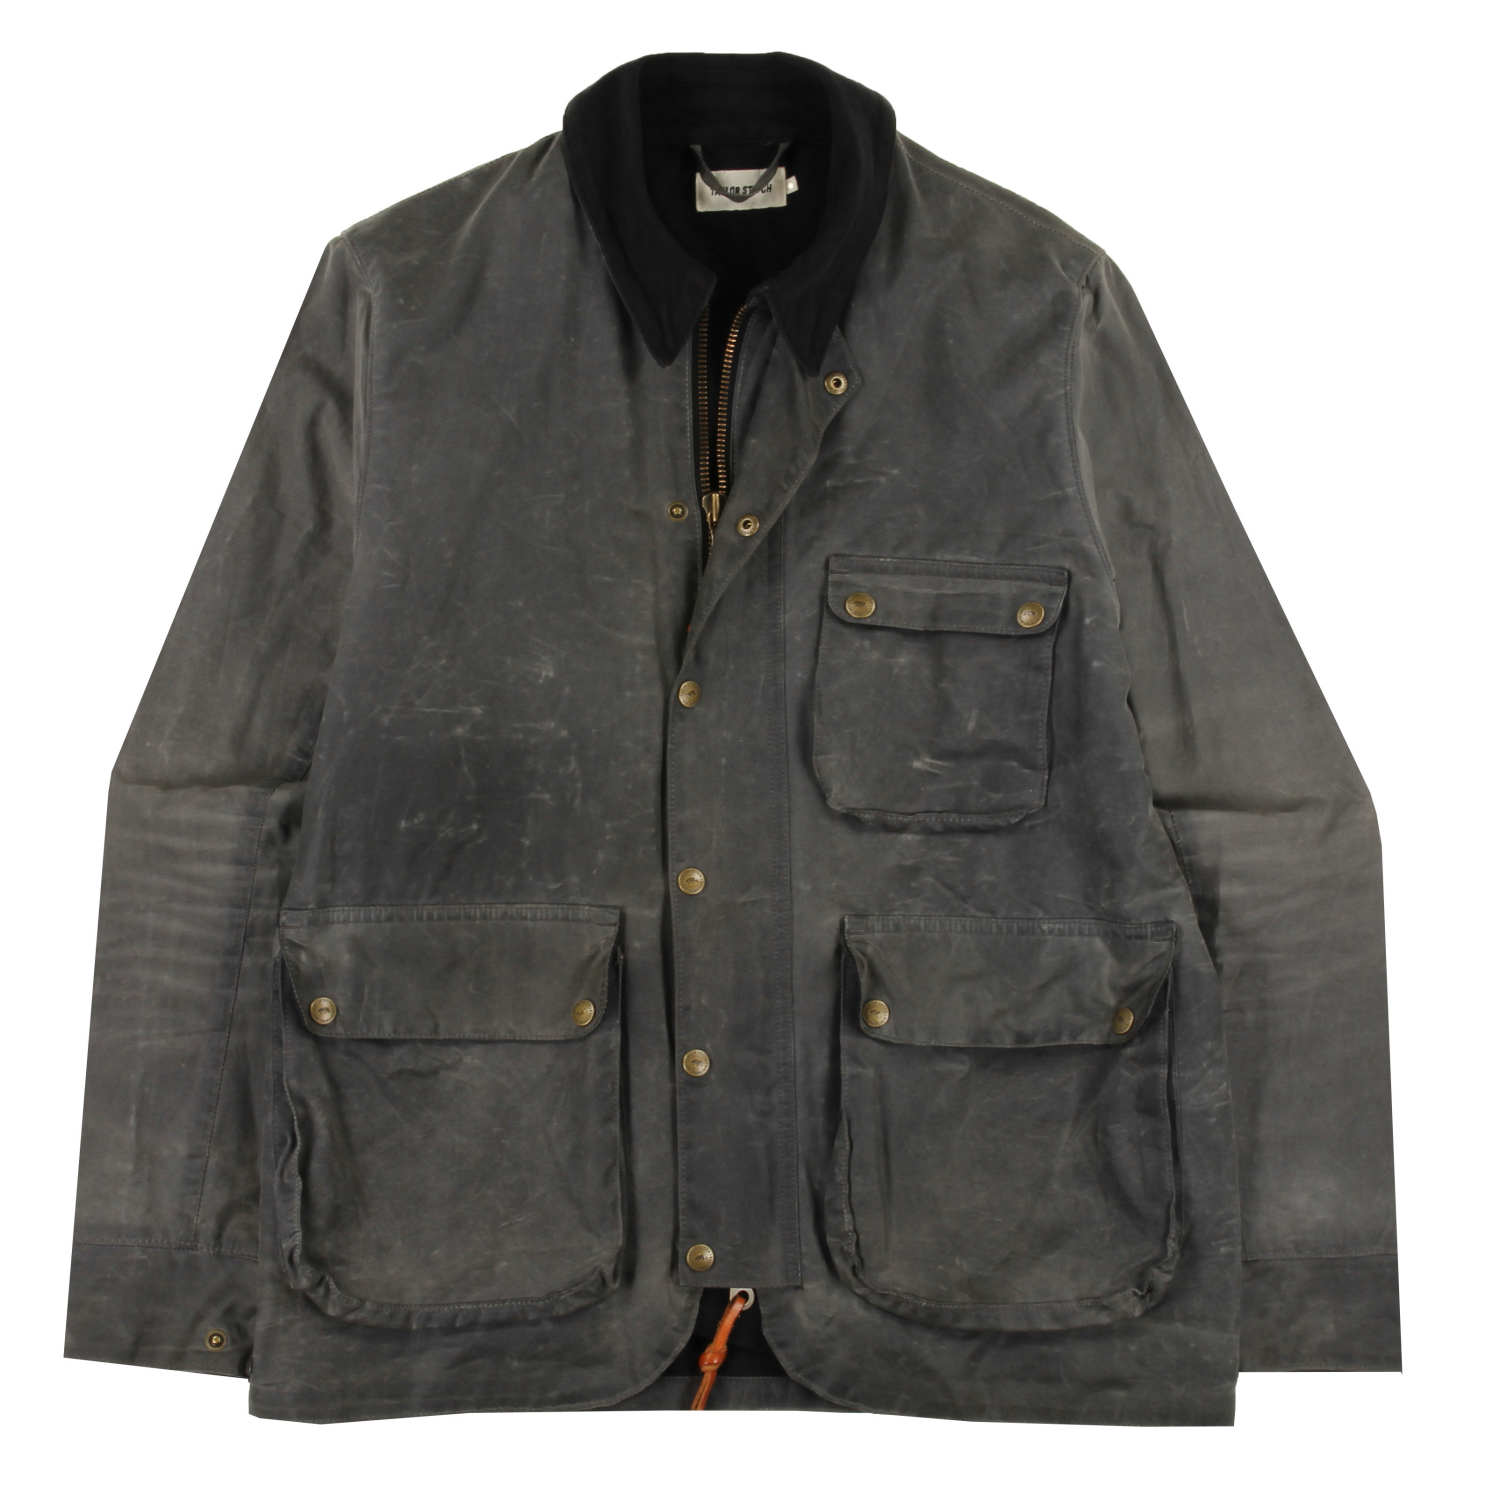 Vintage - The Rover Jacket